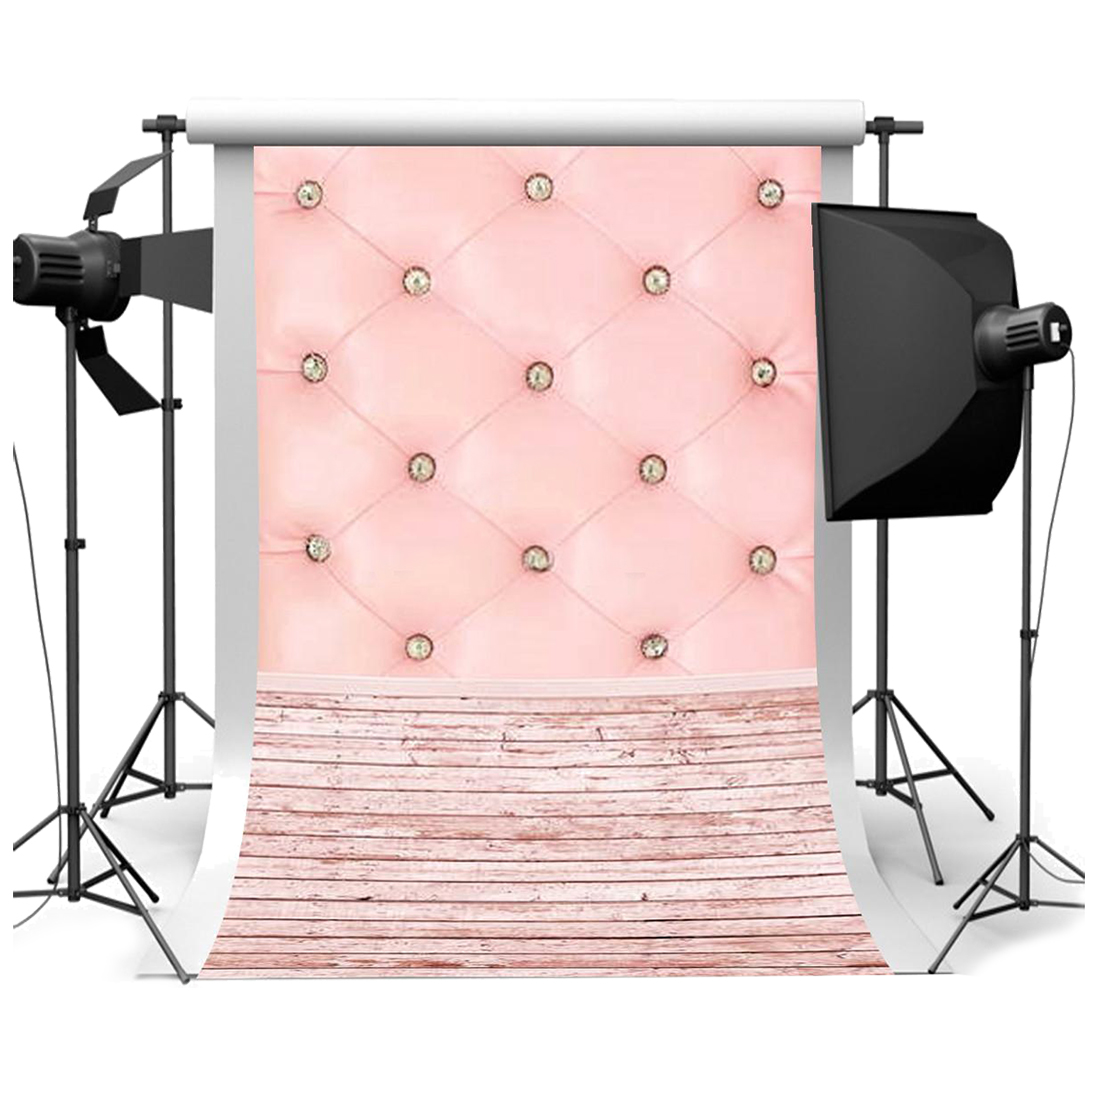 3x5FT Vinyl Photography Backdrop Wall Photo Background pink